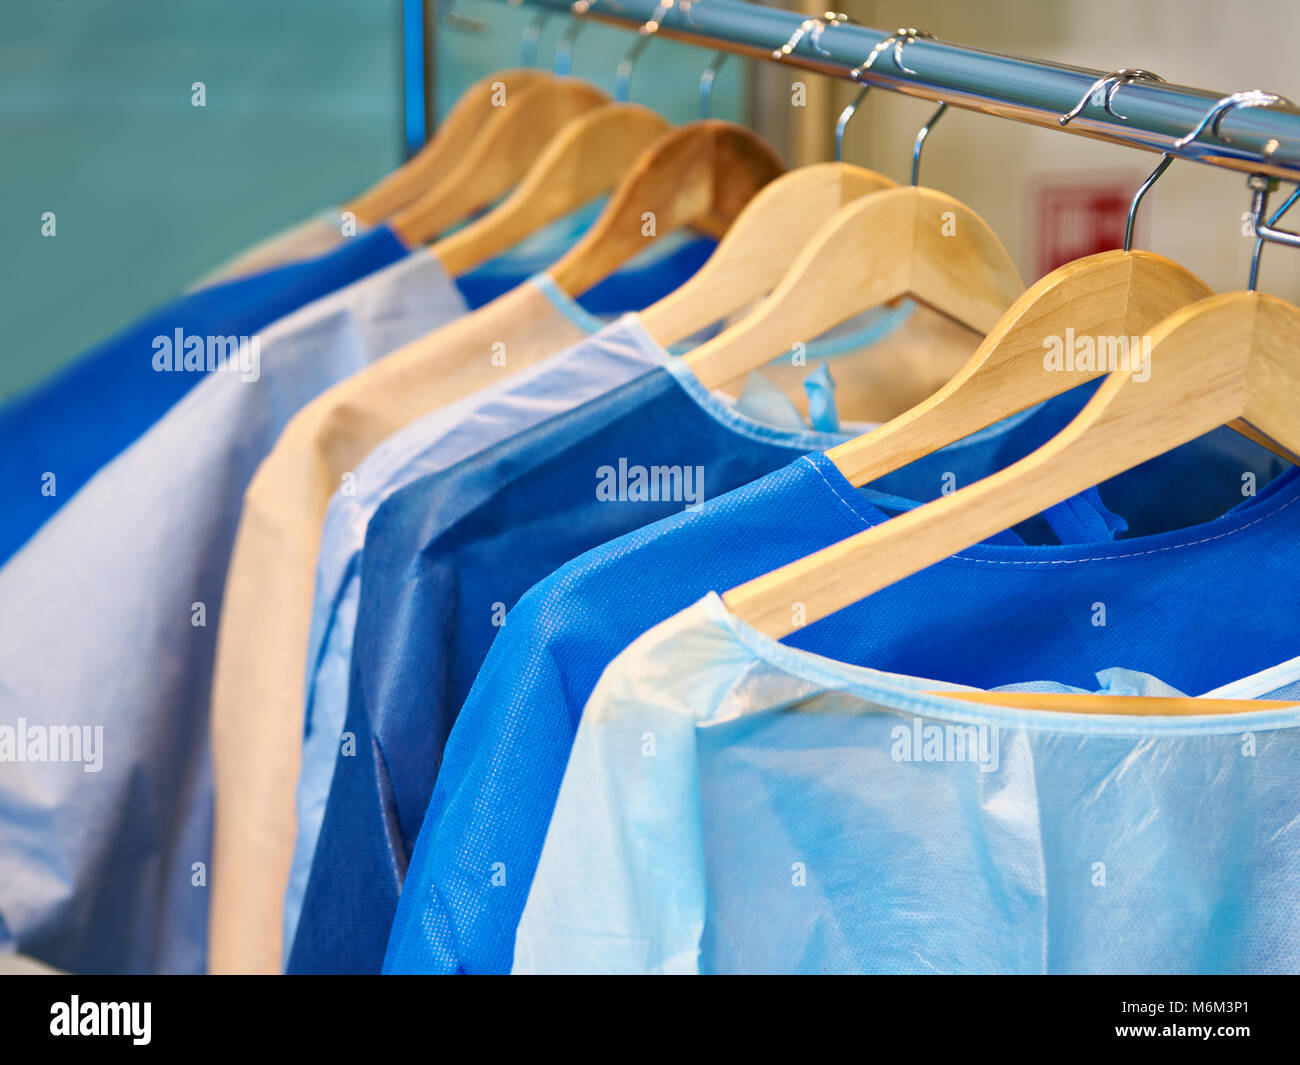 Sterile Gowns Stock Photos & Sterile Gowns Stock Images - Alamy